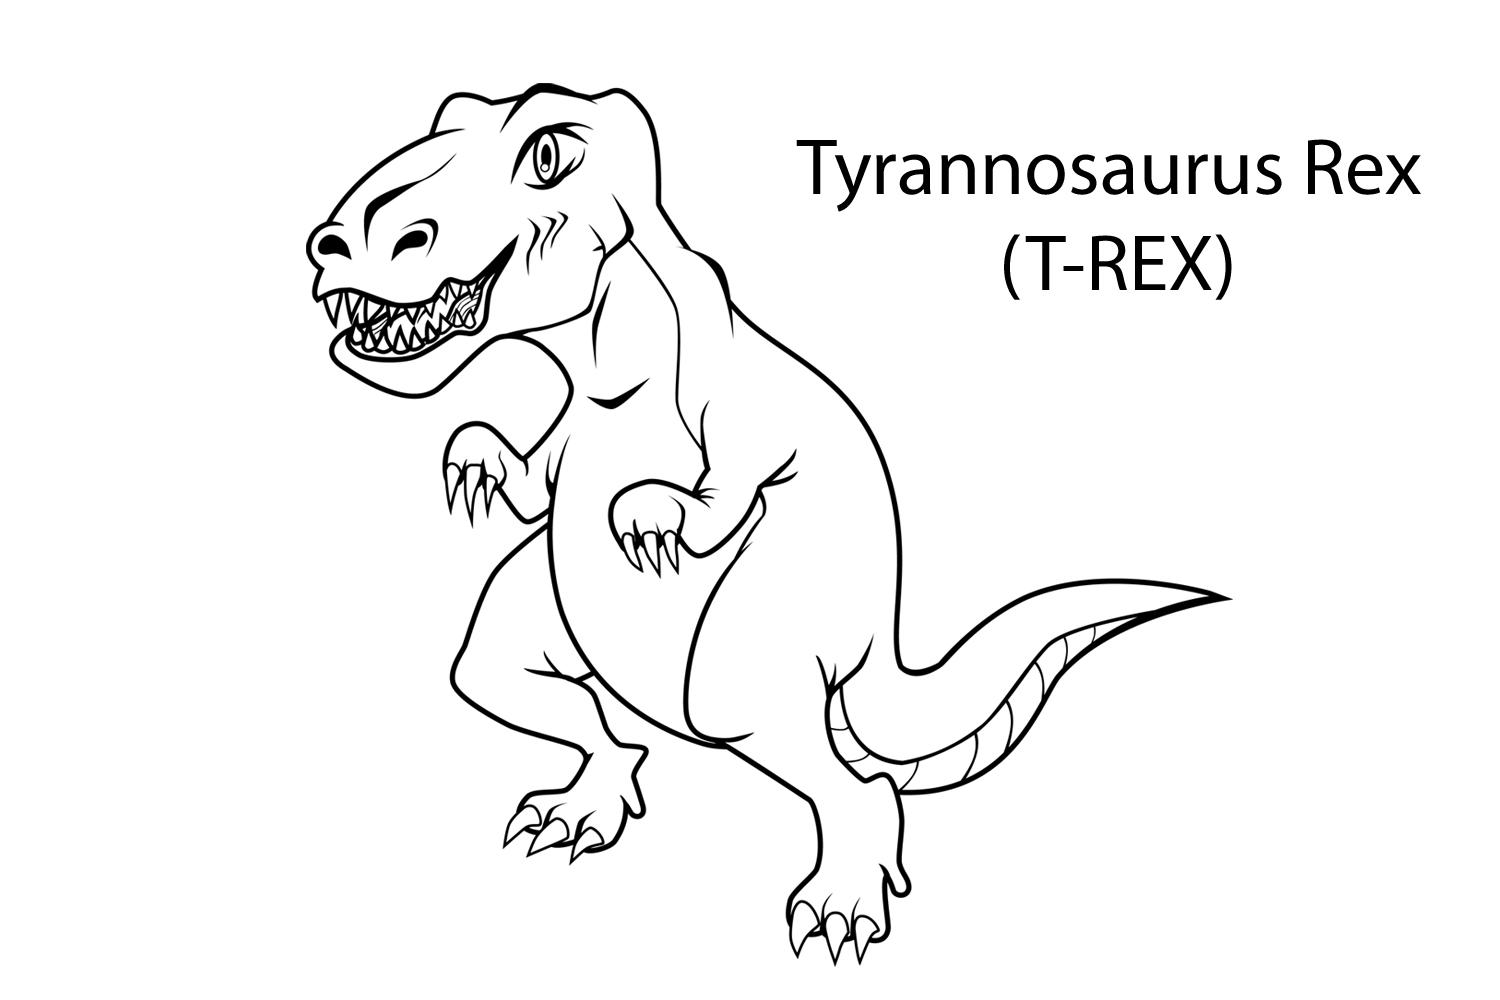 Dinosaur coloring printouts - Printable Dinosaur Coloring Pages With Names Dinosaur Party Pinterest